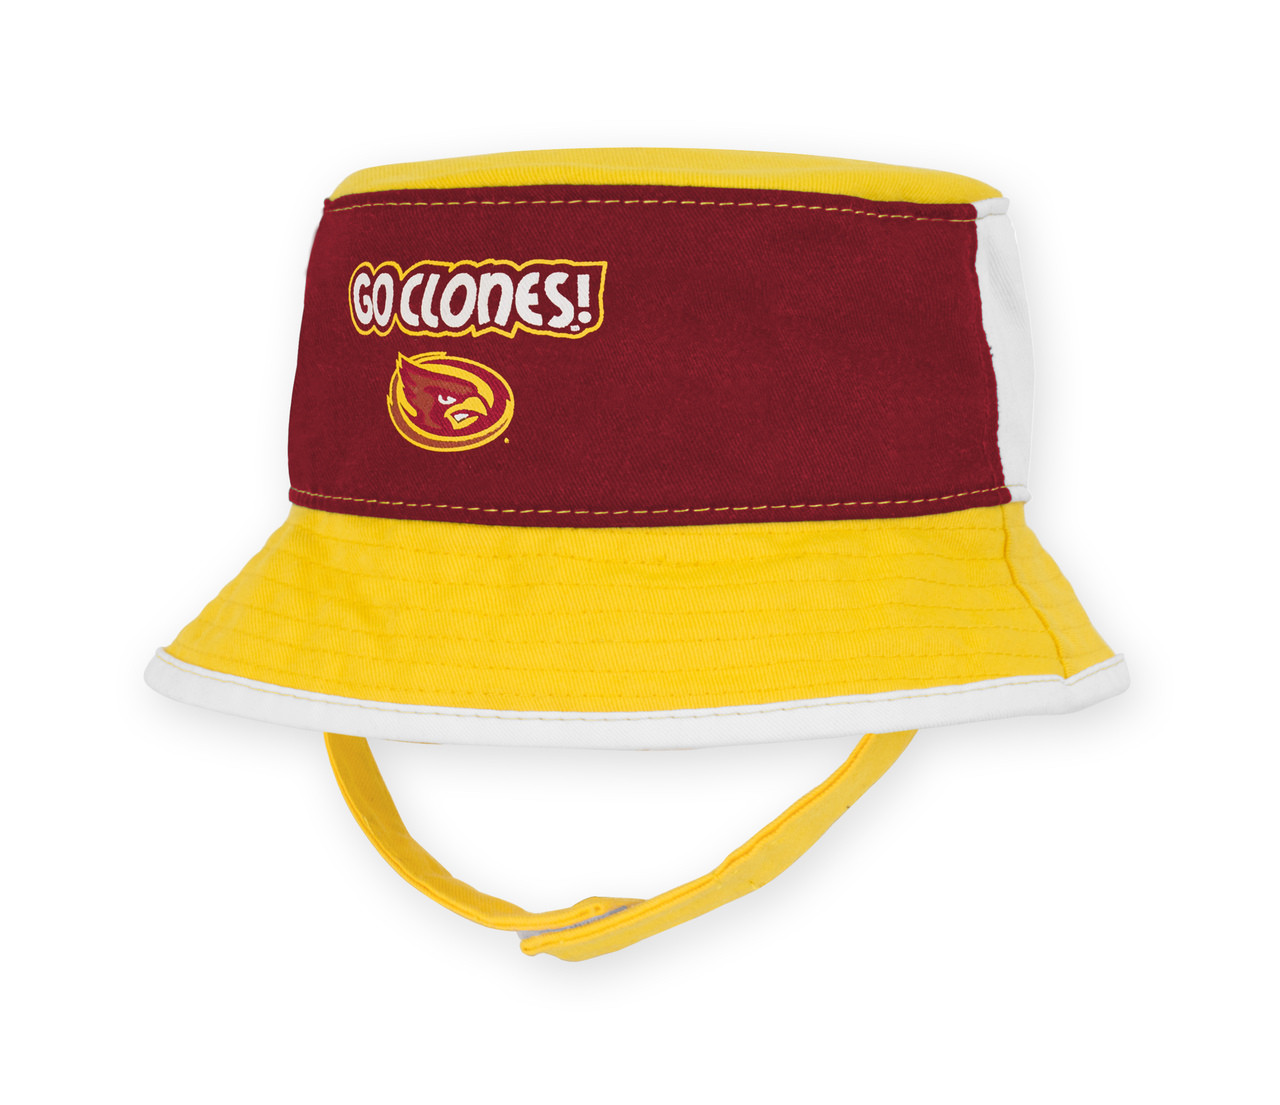 893b427fa2fd5 ... authentic iowa state infant bucket hat cardinal gold white authentic  brand 78abf 26adc ...